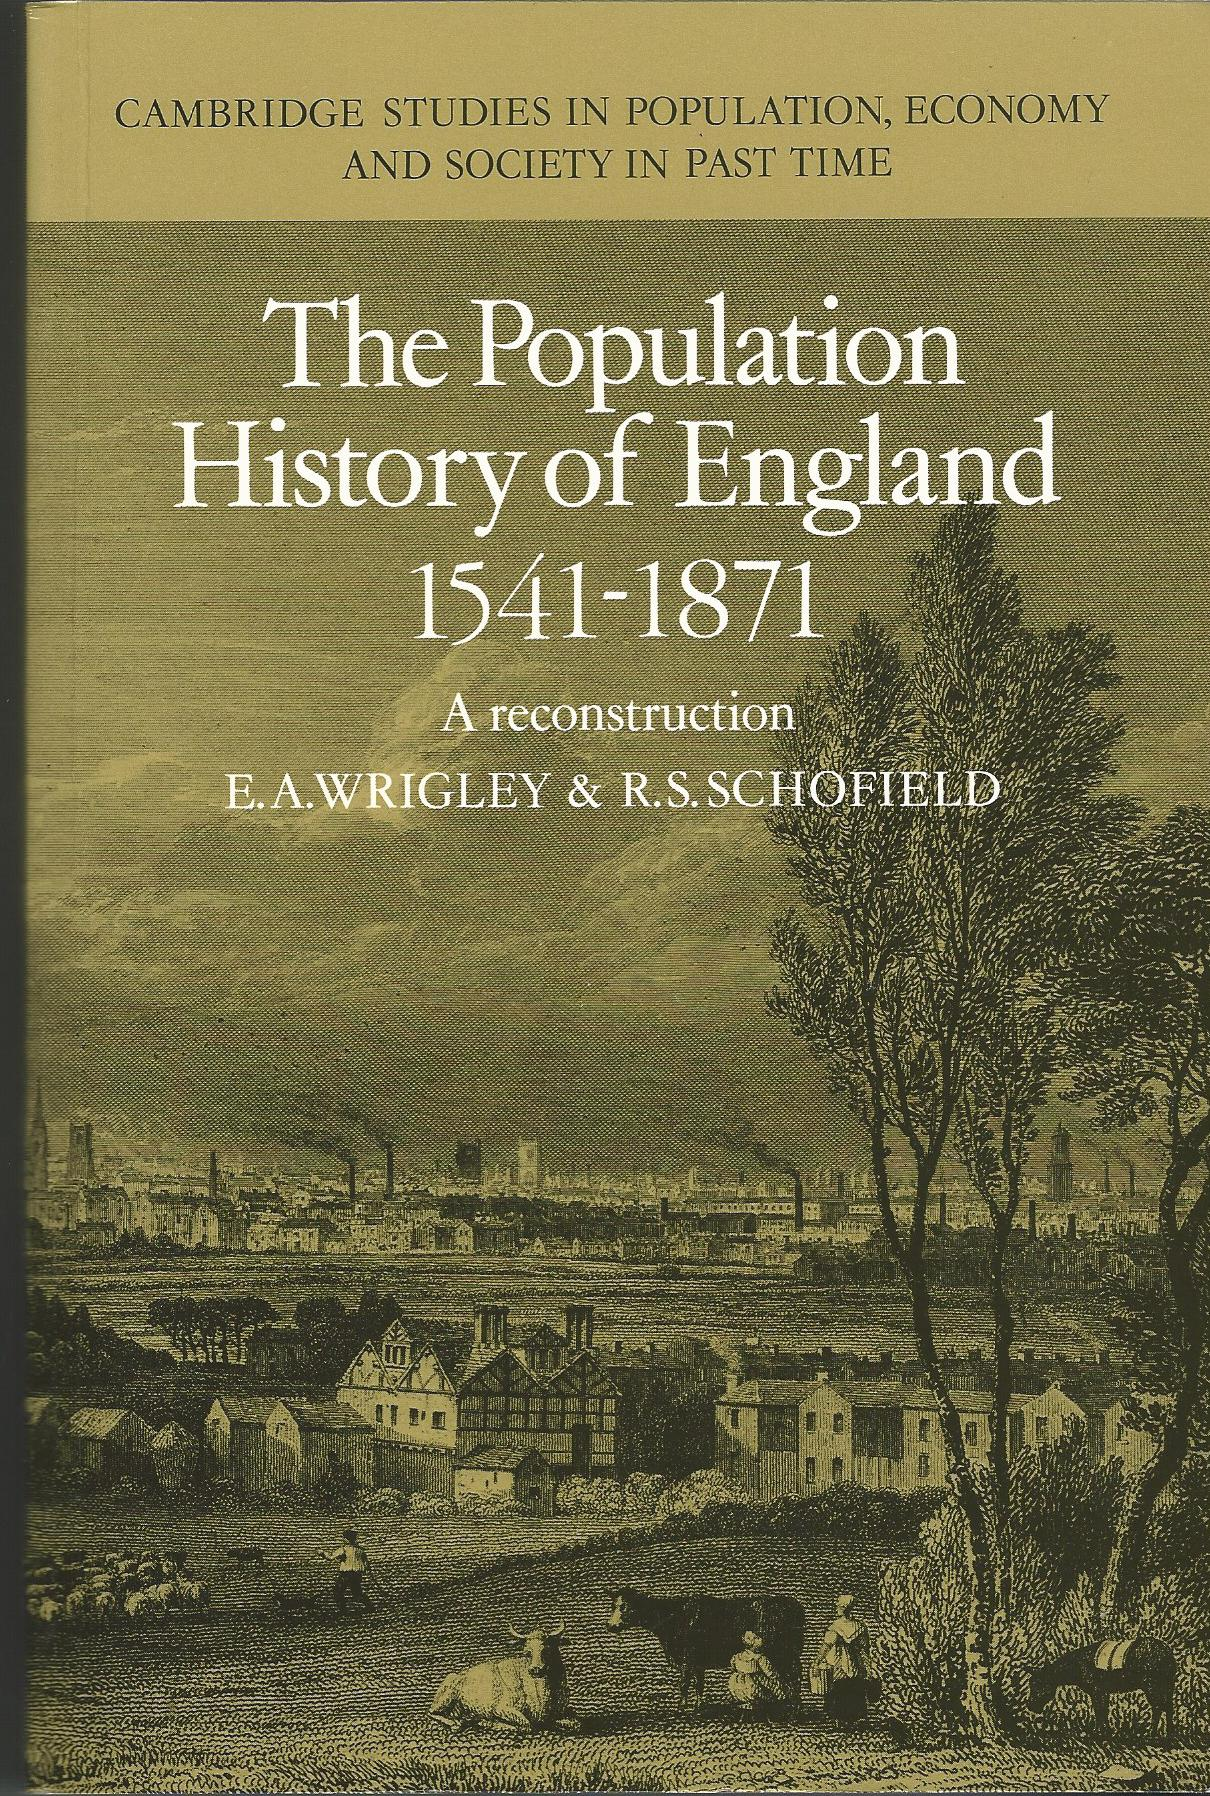 Image for The Population History of England 1541-1871 (Cambridge Studies in Population, Economy and Society in Past Time)